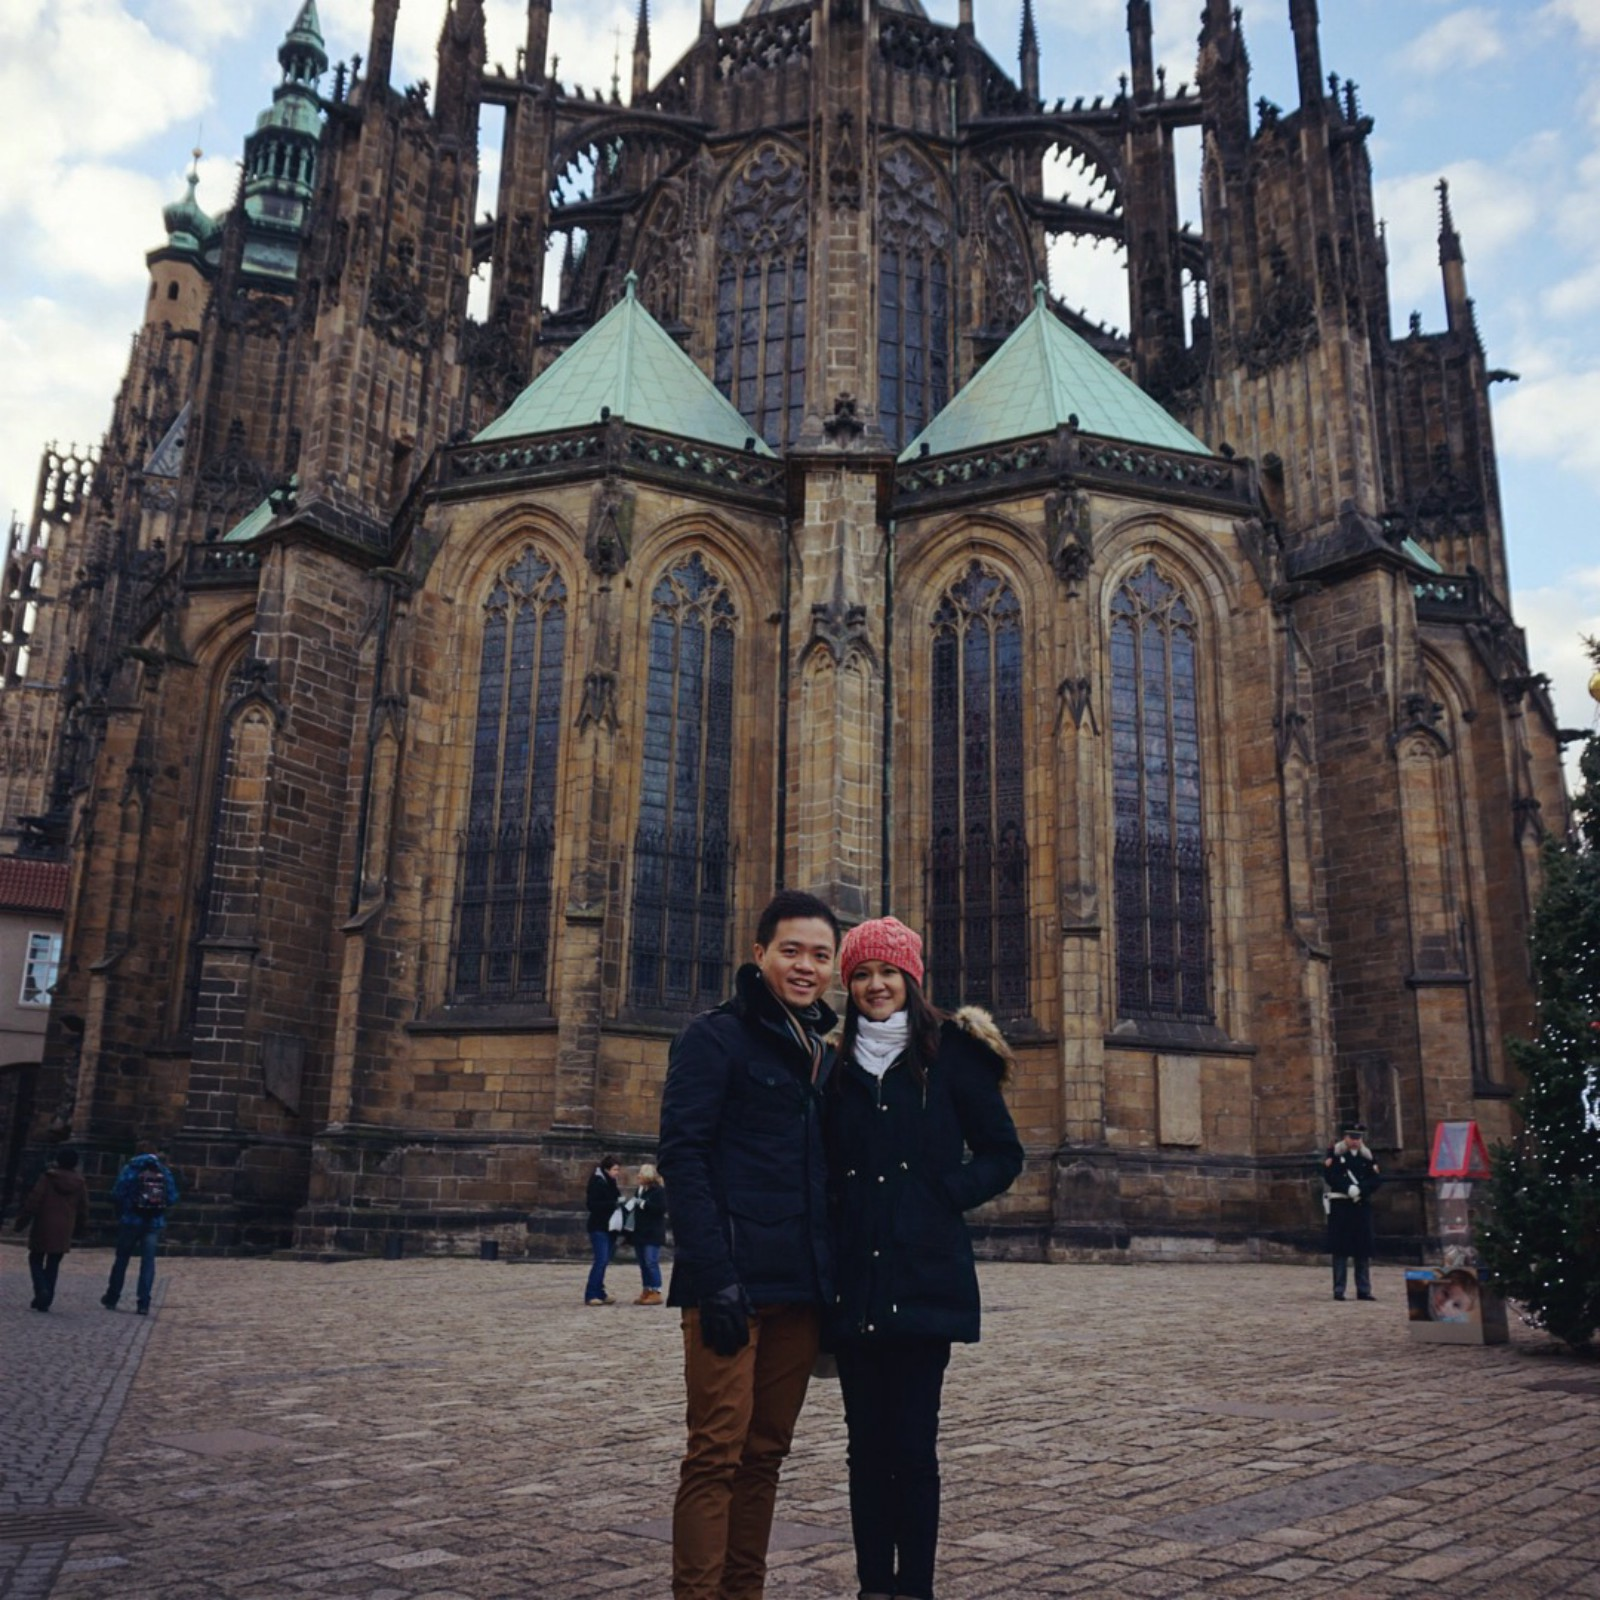 Us in front of St Vitus Catherdral